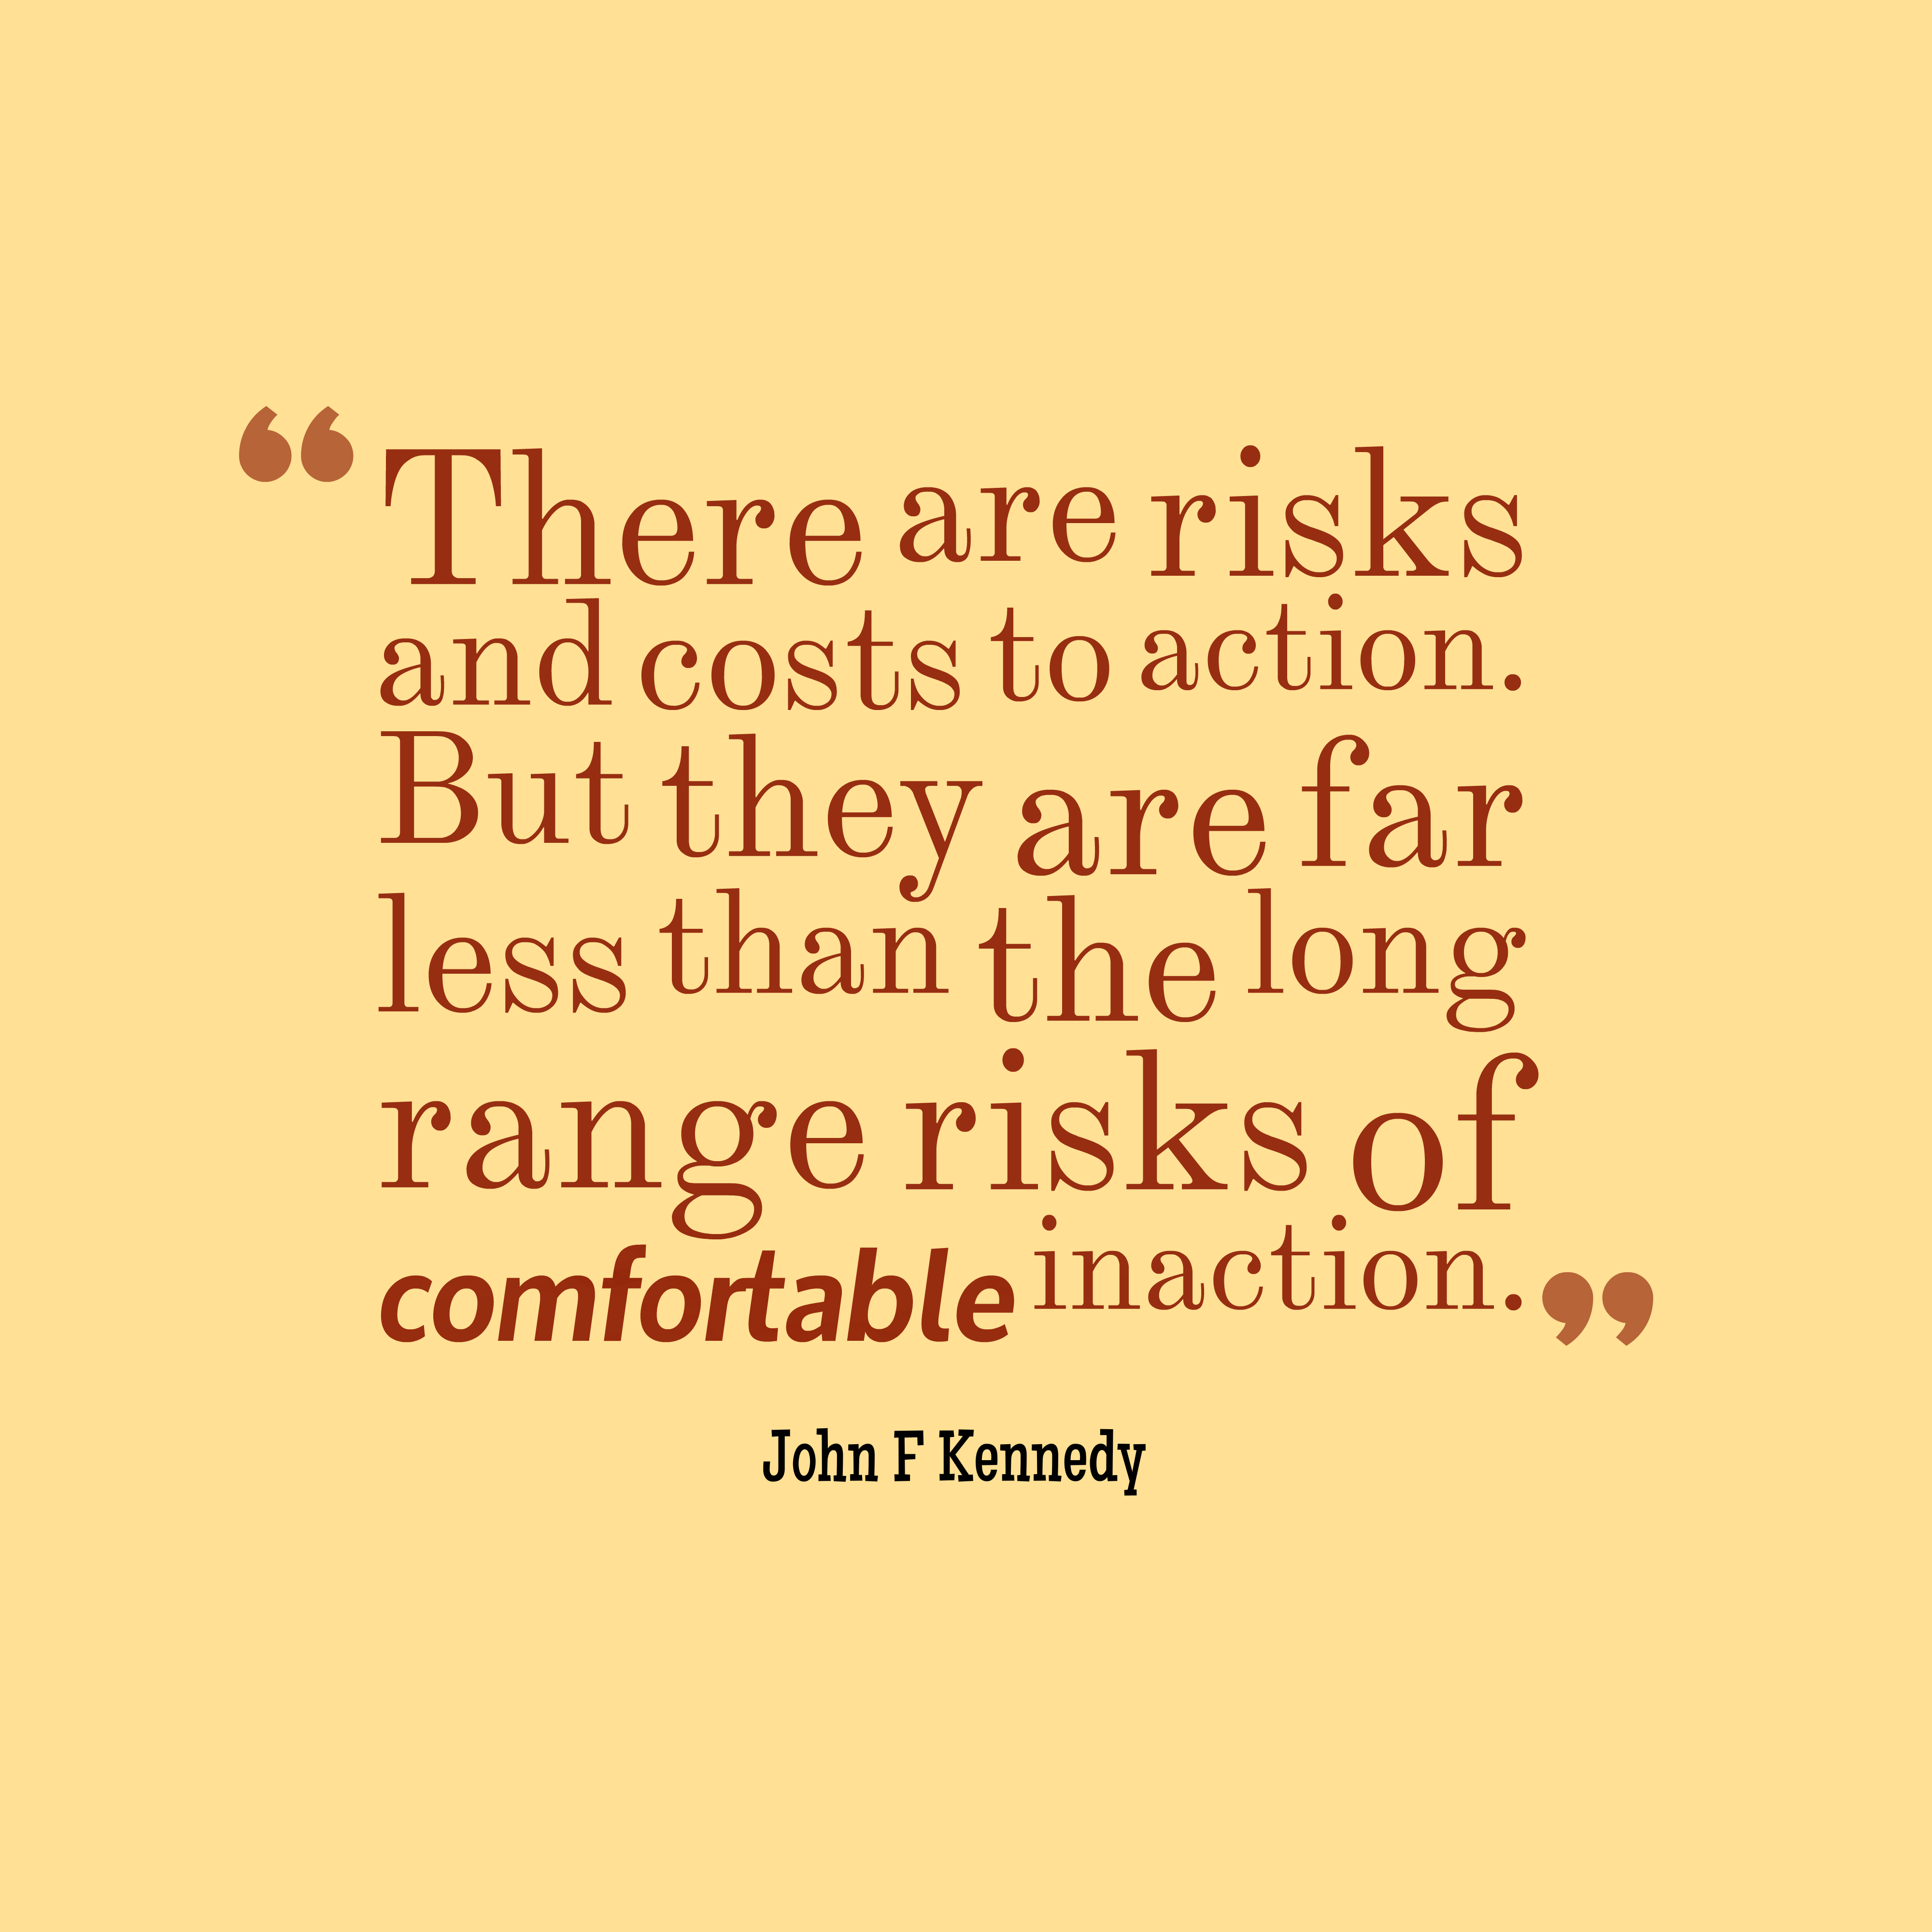 Quotes image of There are risks and costs to action. But they are far less than the long range risks of comfortable inaction.